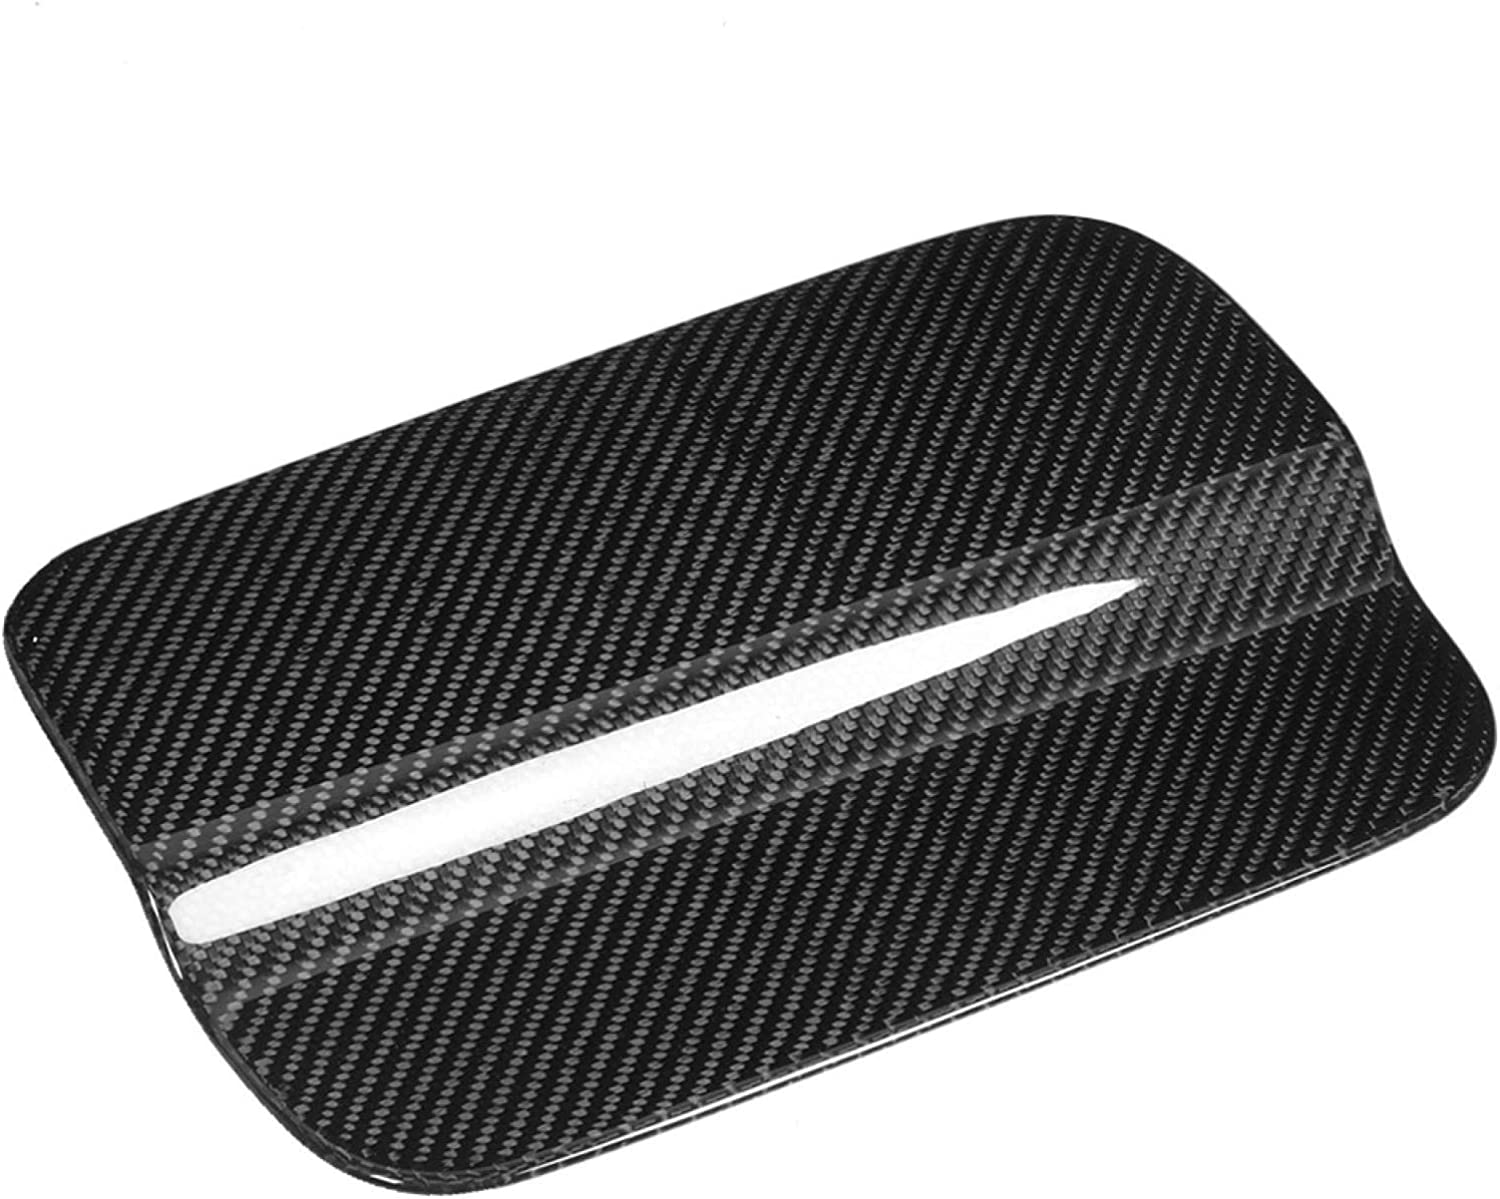 Fuel Charlotte Mall Tank Cap Trim Dry Cover Carbon Ca Fiber All items in the store